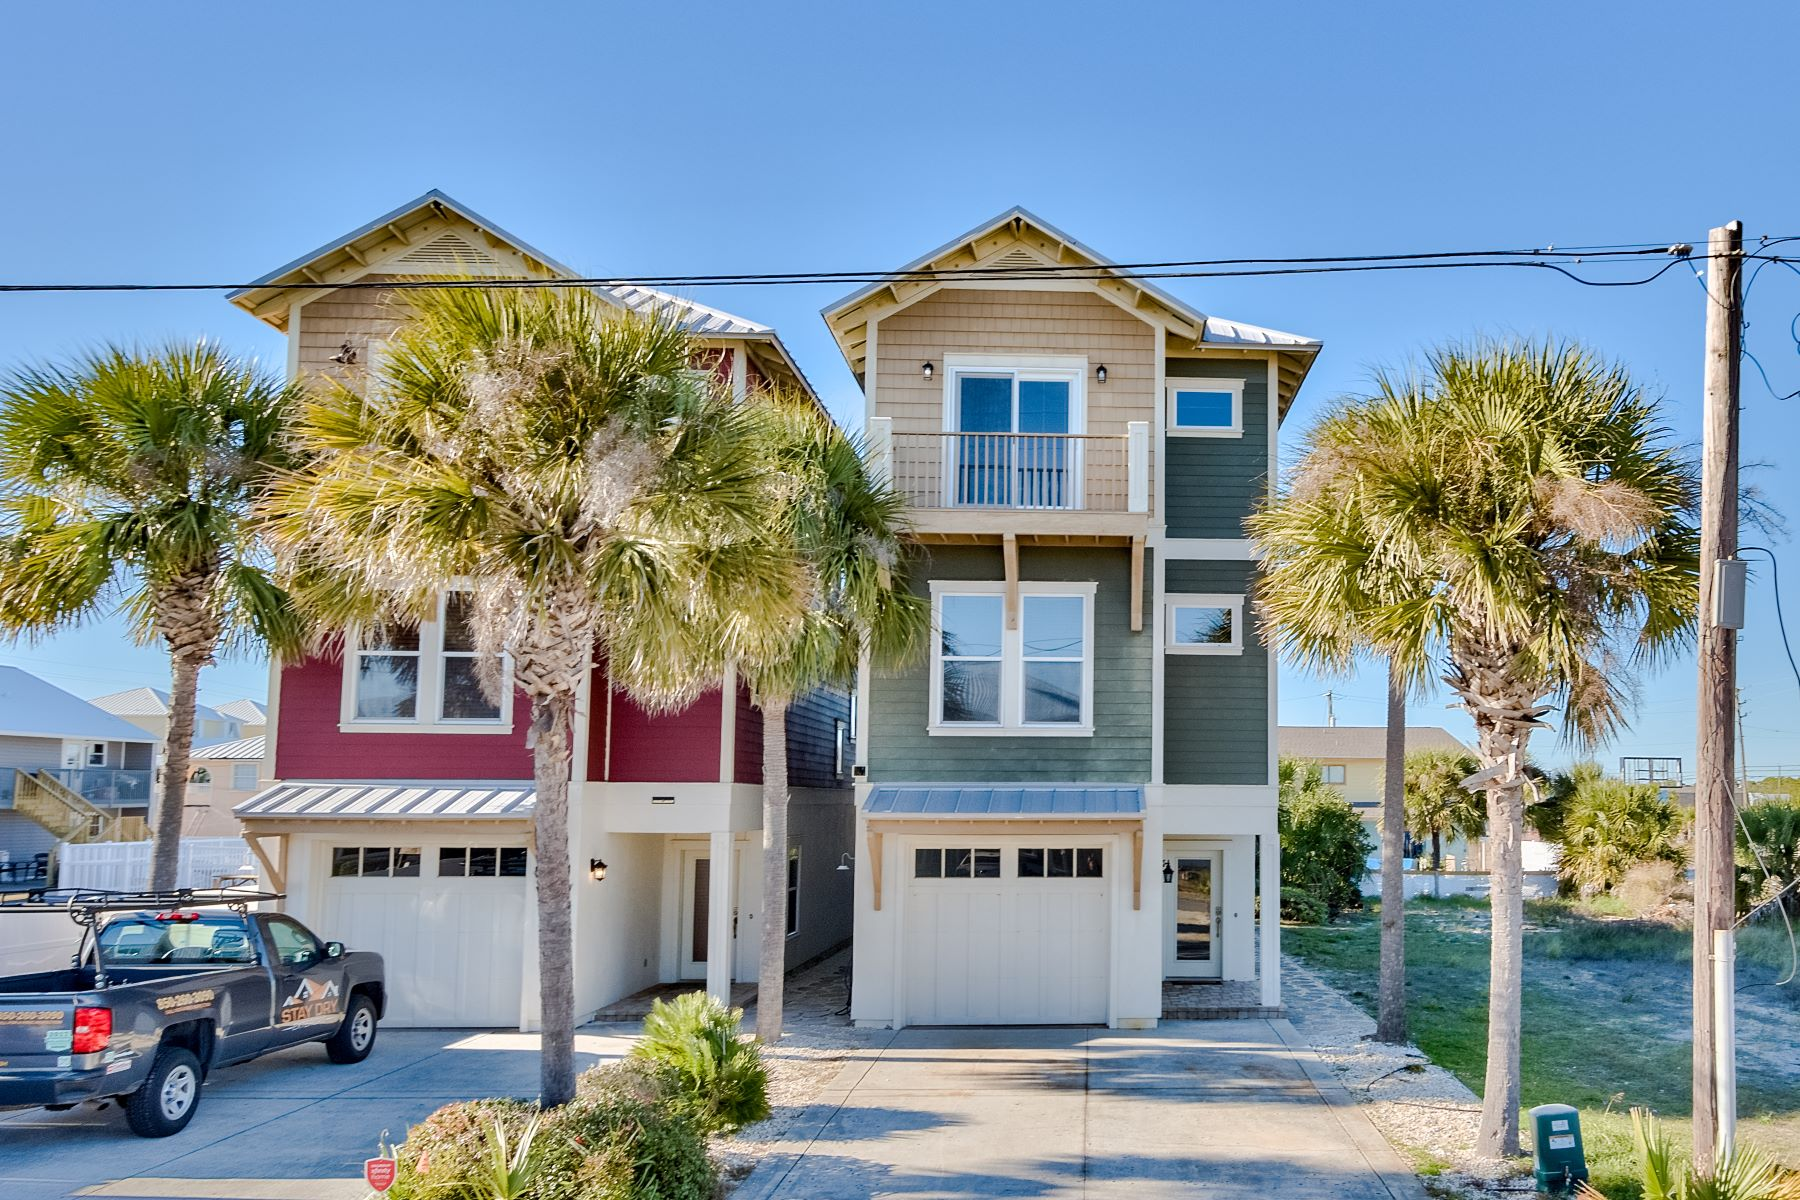 Single Family Homes for Sale at Lovely Beach Home Exemplifies Fine Workmanship Throughout 4118 Utes Street Panama City Beach, Florida 32408 United States